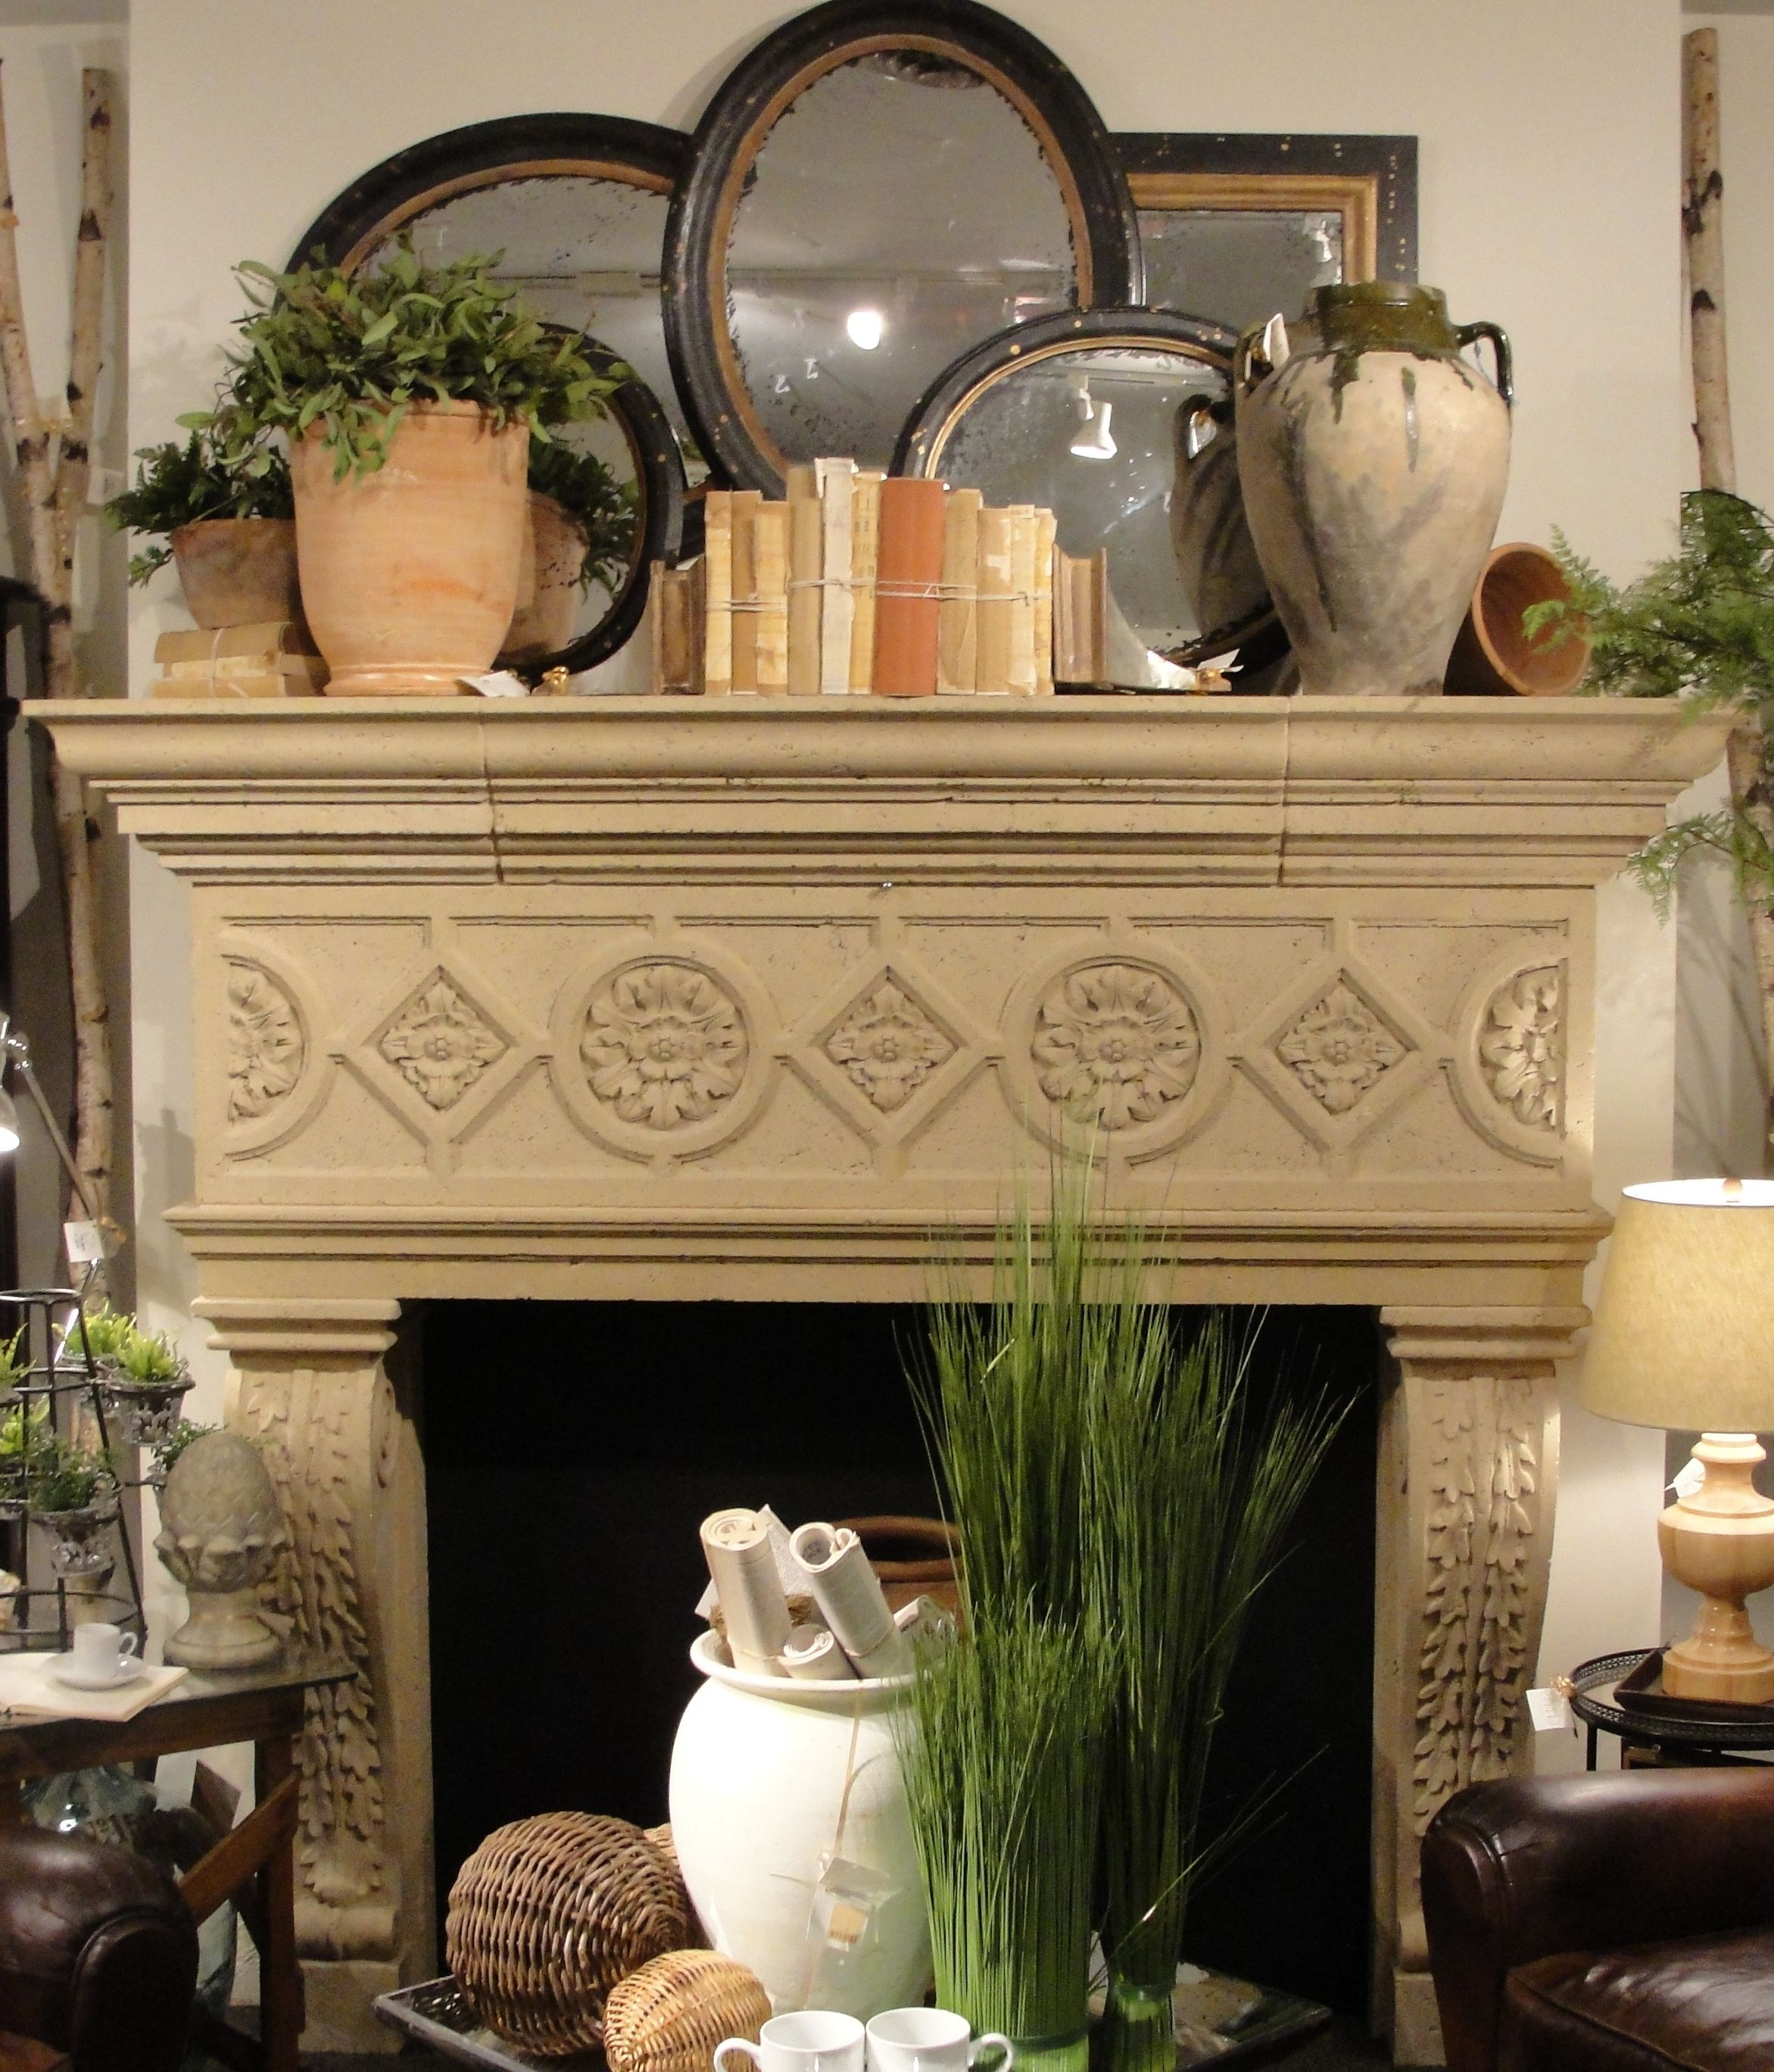 Mantel Decor For This Spring Mantel Display We Wanted